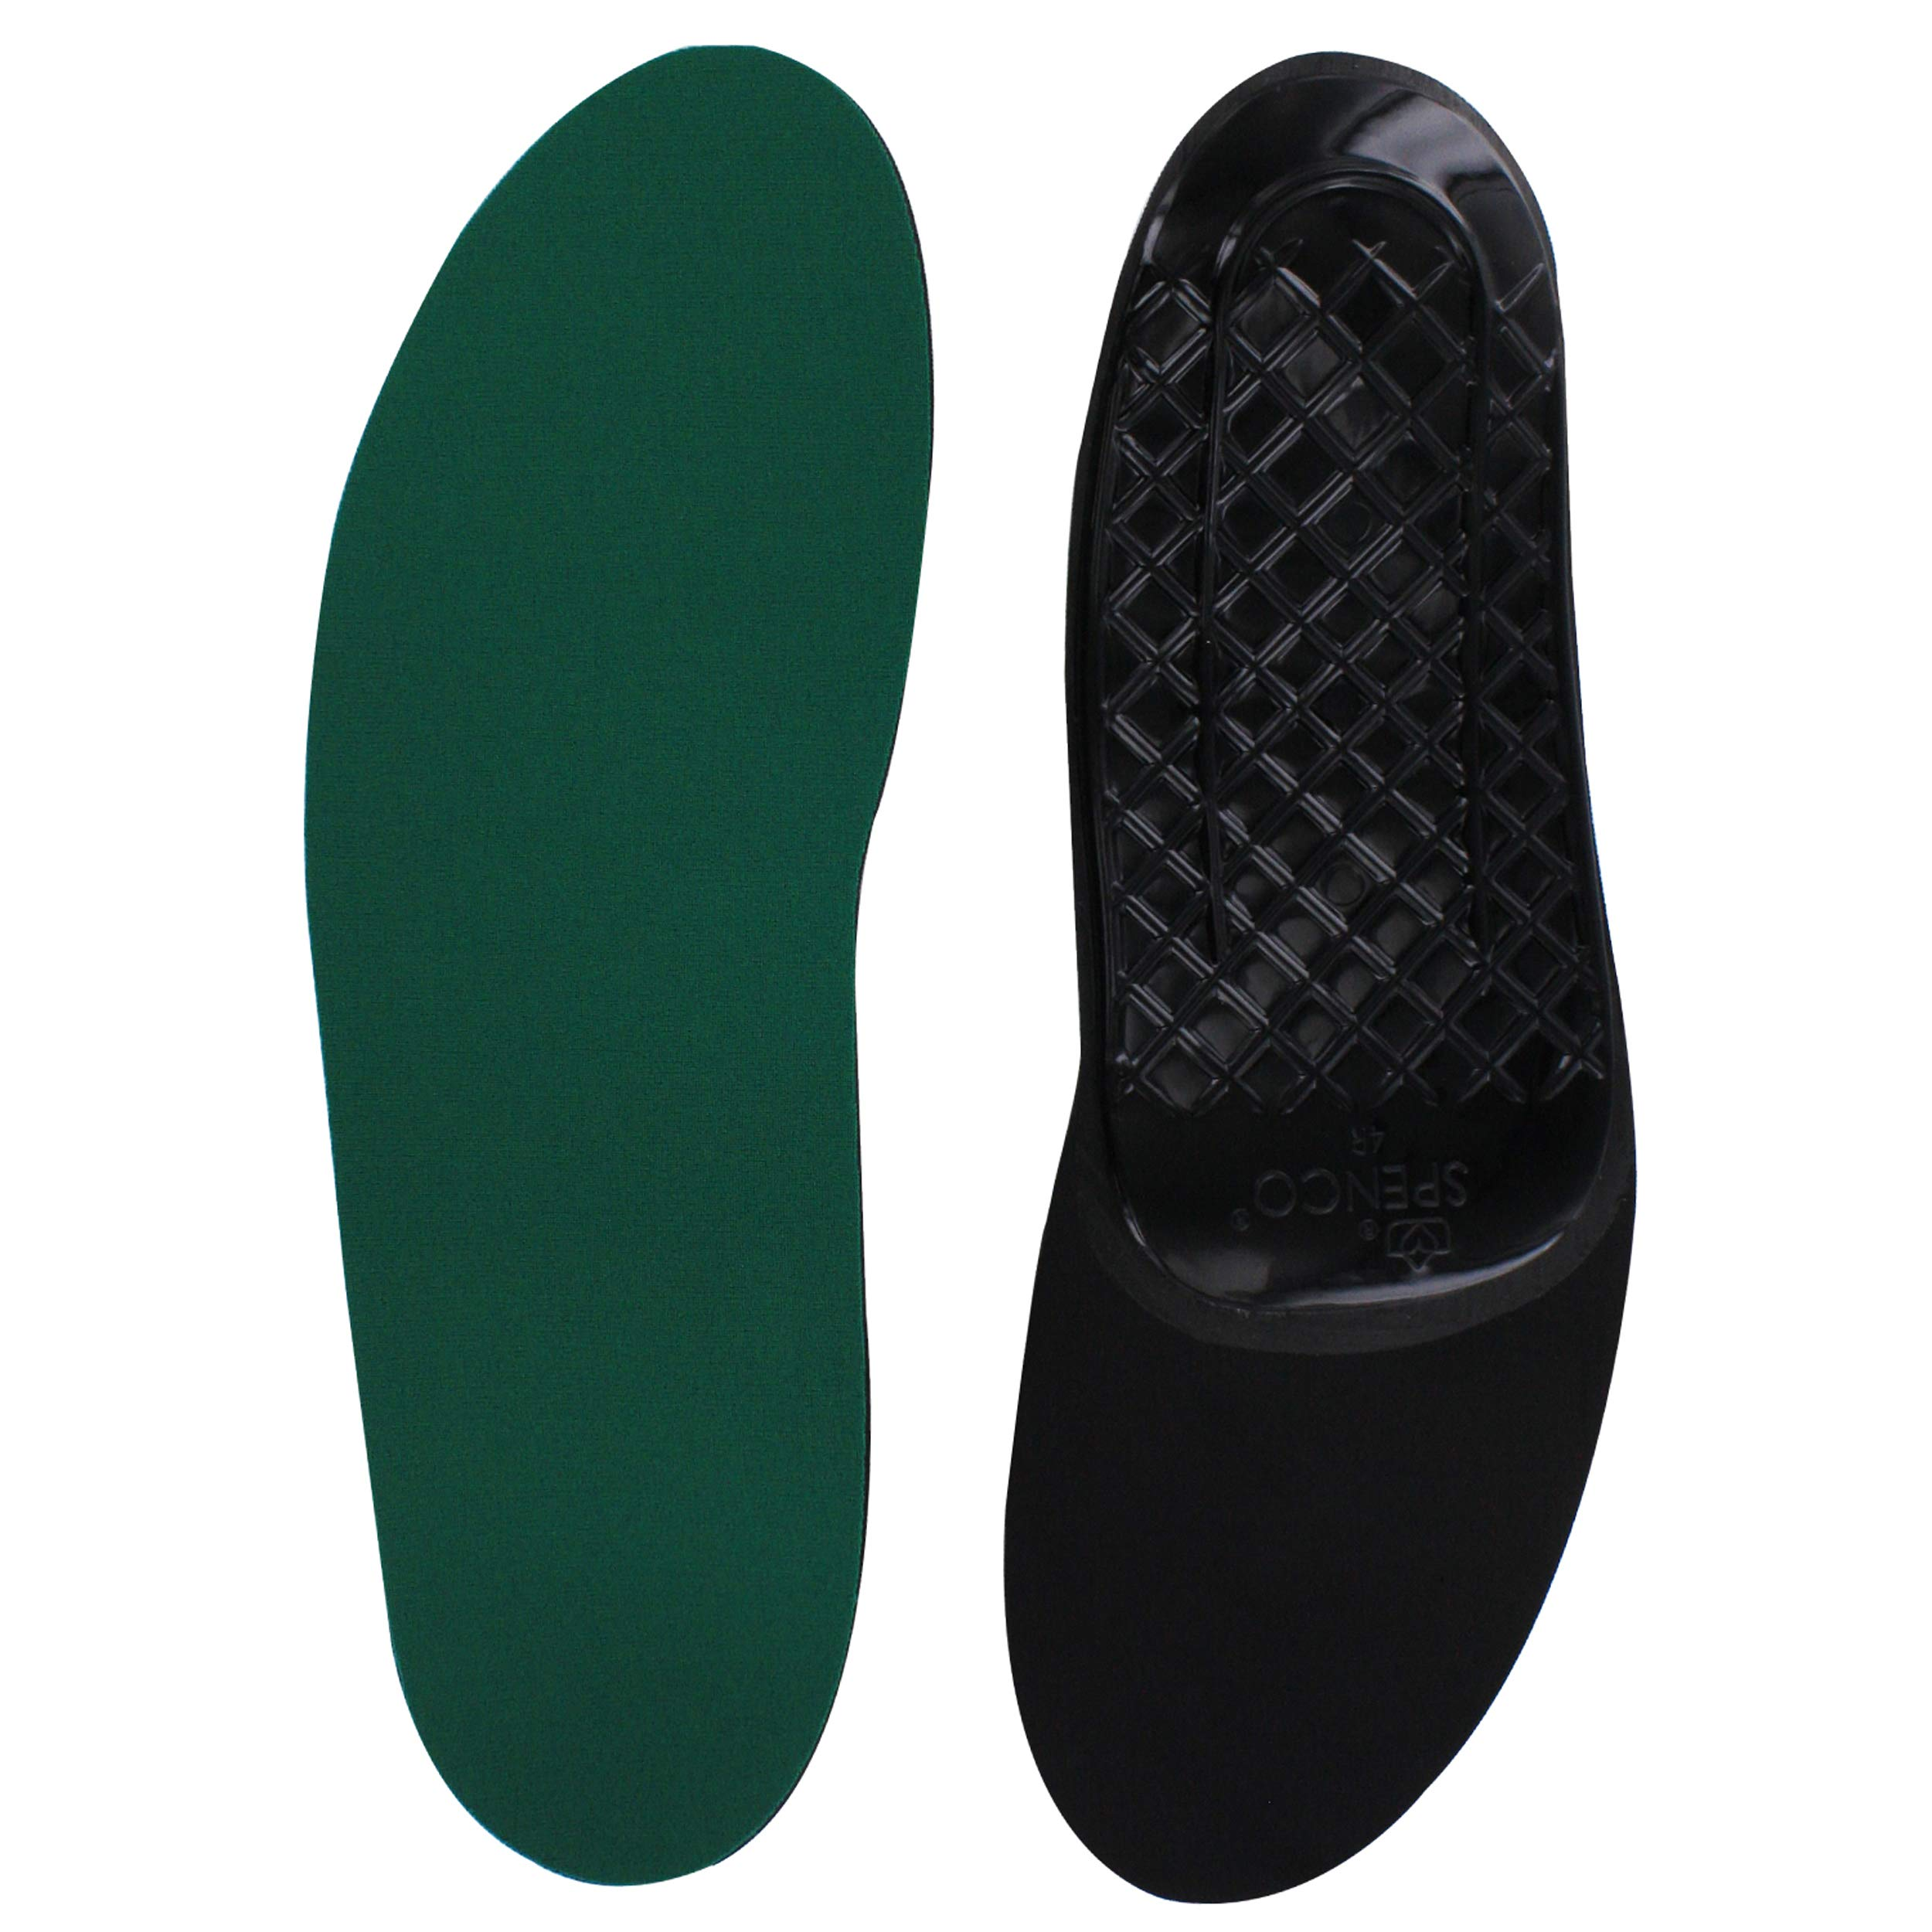 Spenco Rx Orthotic Arch Support Full Length Shoe Insoles, Women's 9-10.5/Men's 8-9.5